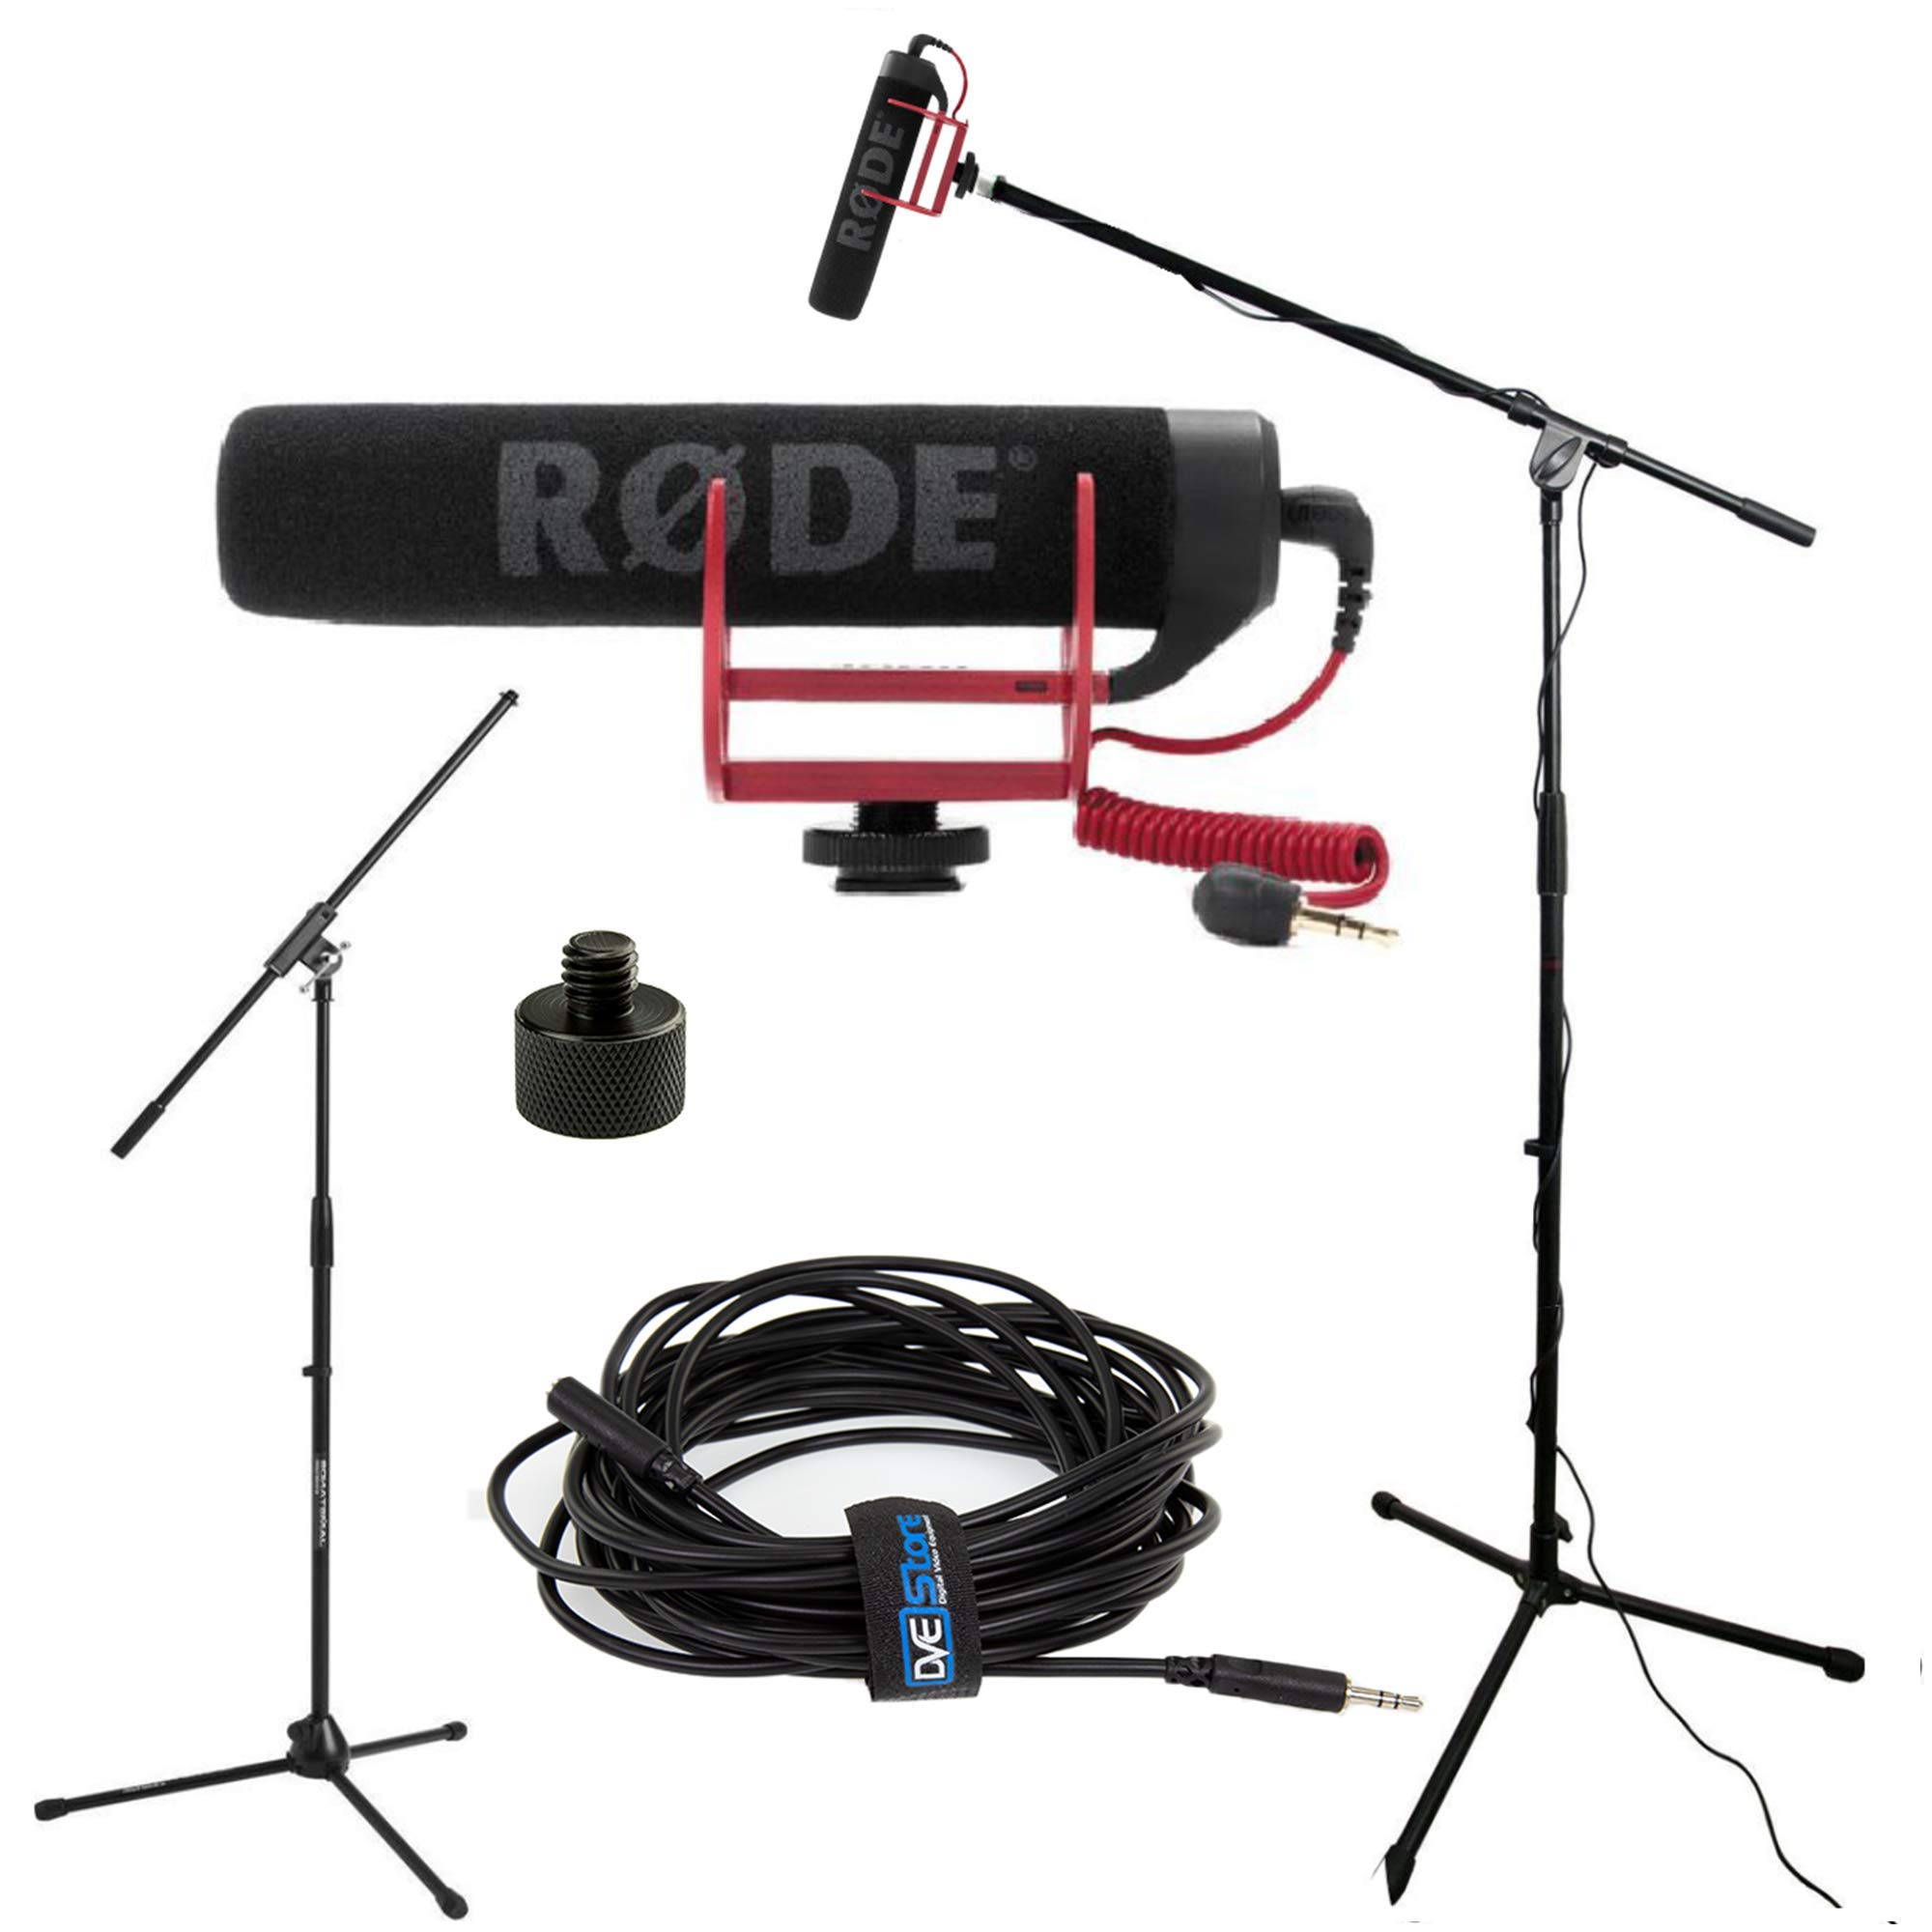 RODE VideoMic GO Studio Boom Kit - VideoMic GO, Boom Stand, Thread Adapter, and 25' Cable by DVESTORE